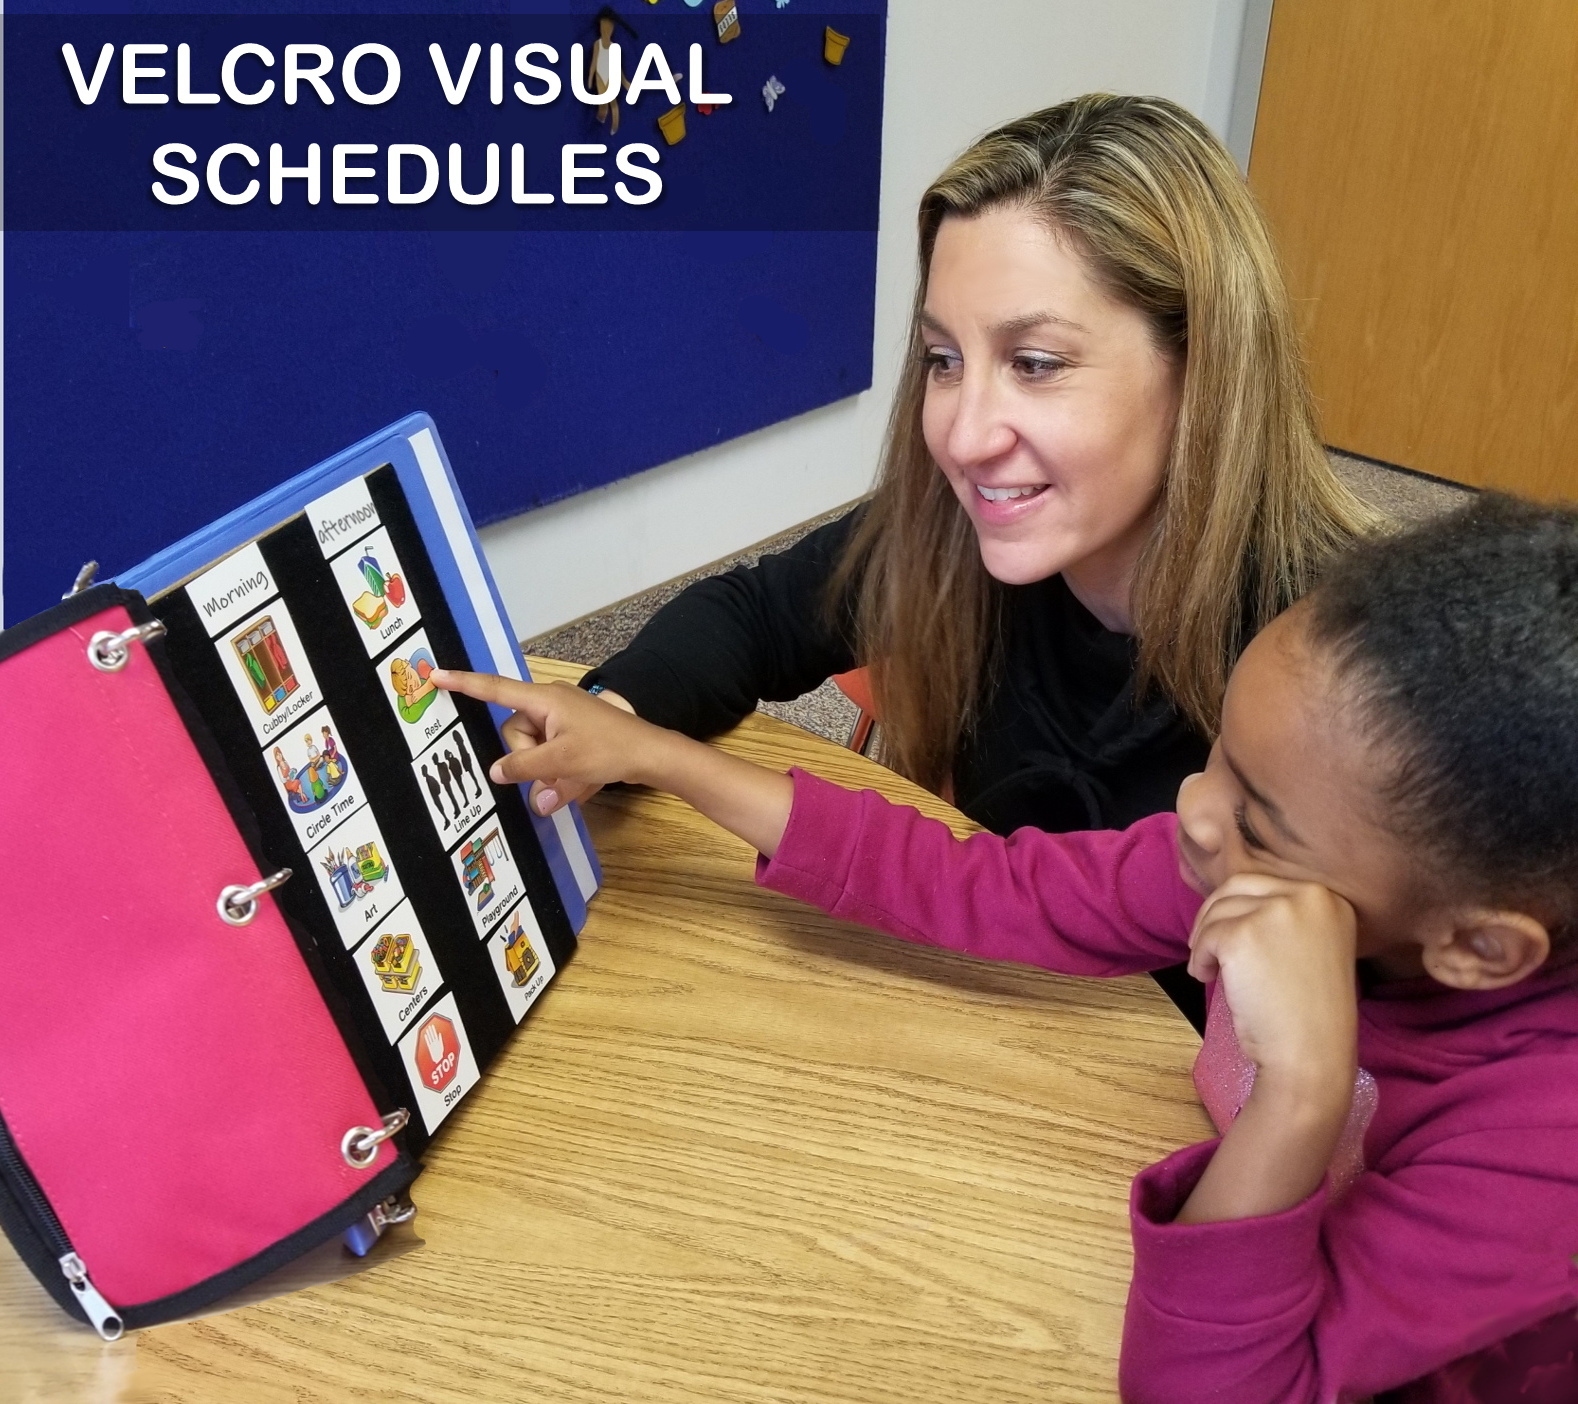 VELCRO VISUAL SCHEDULES